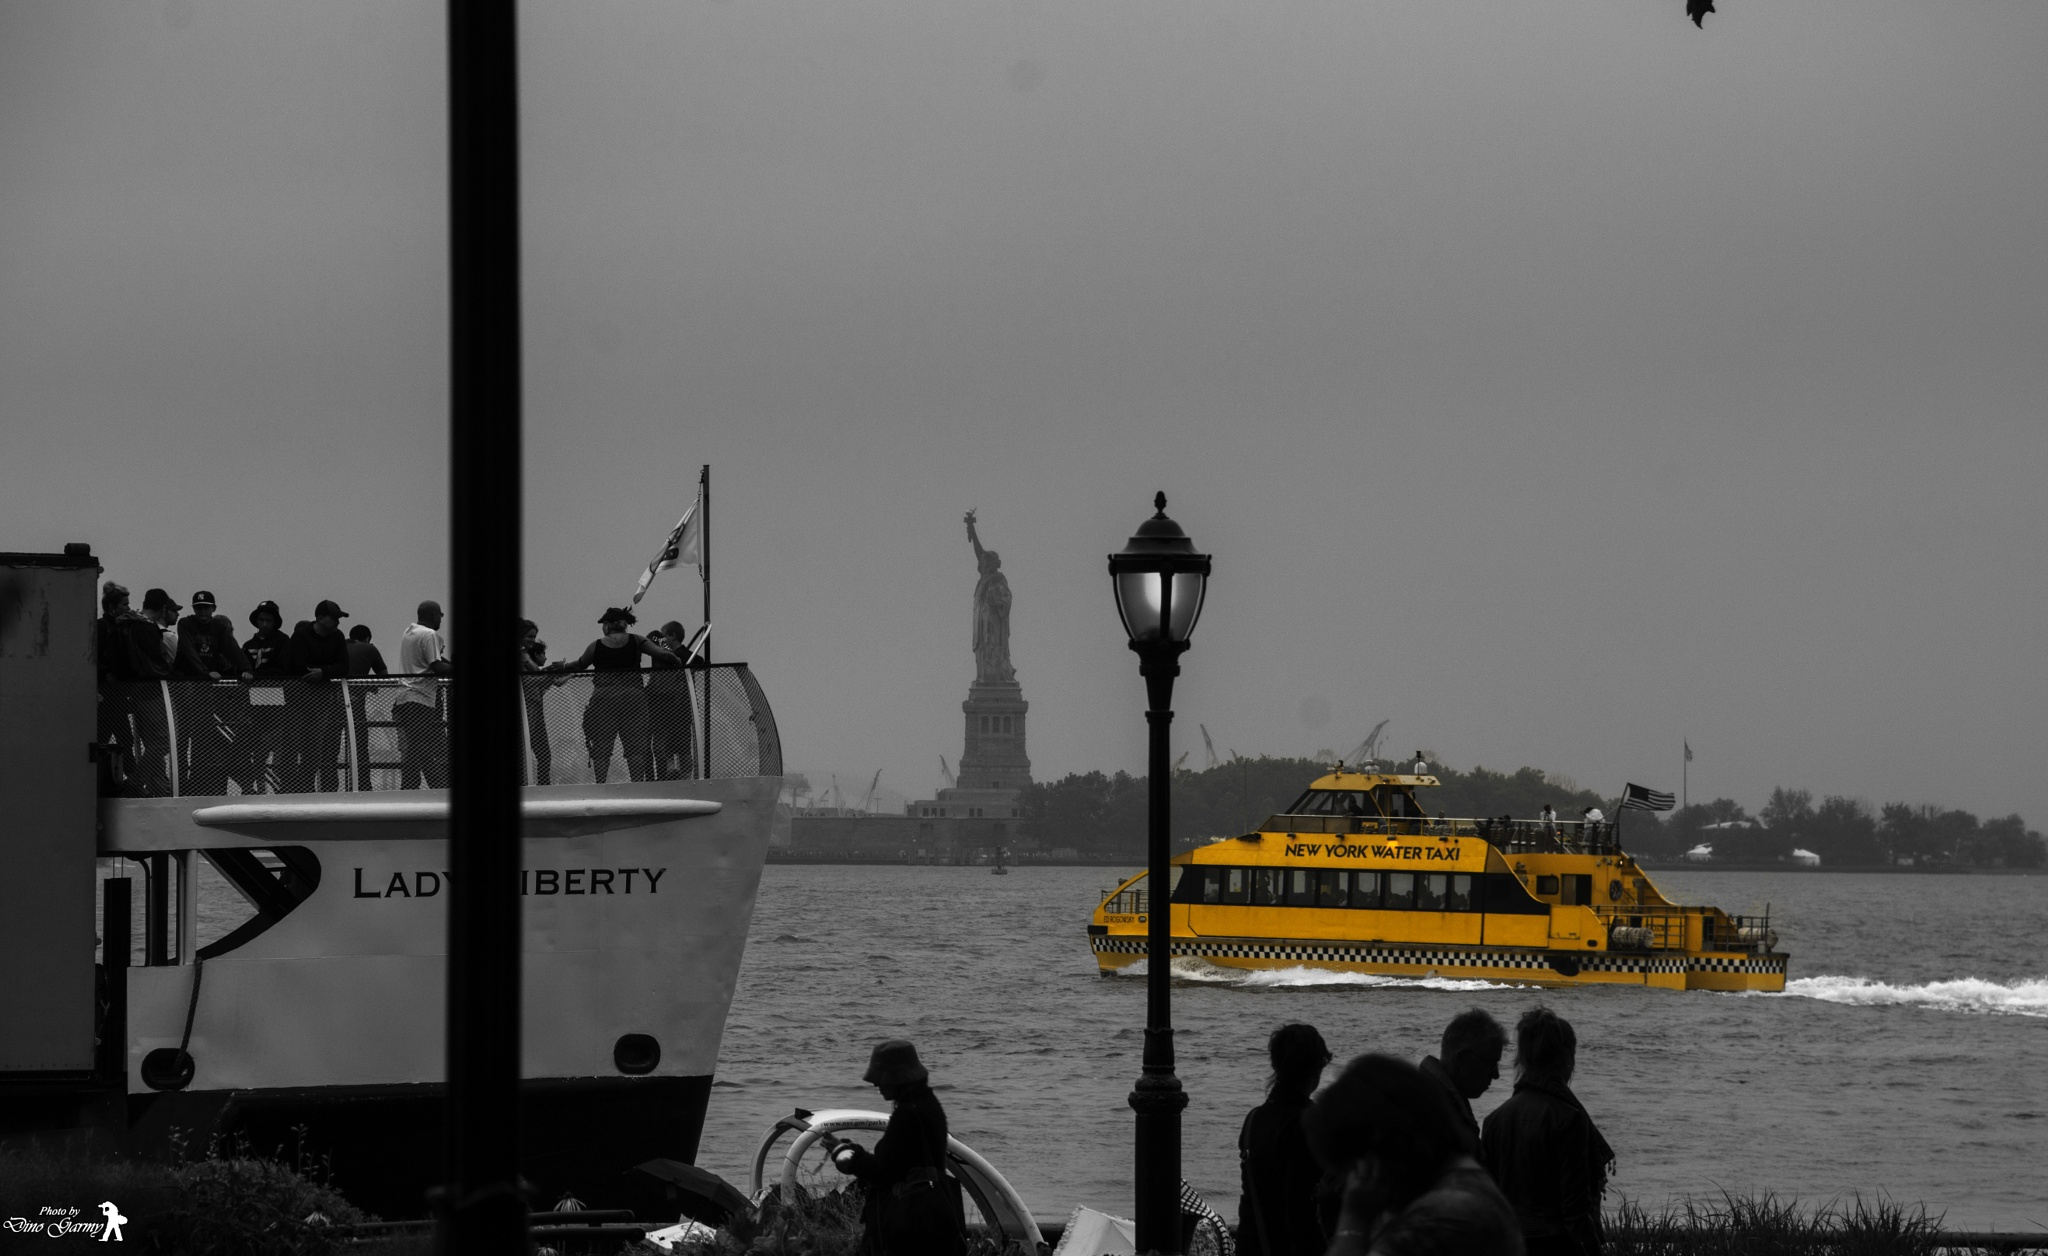 Water Yellow cab by Dino